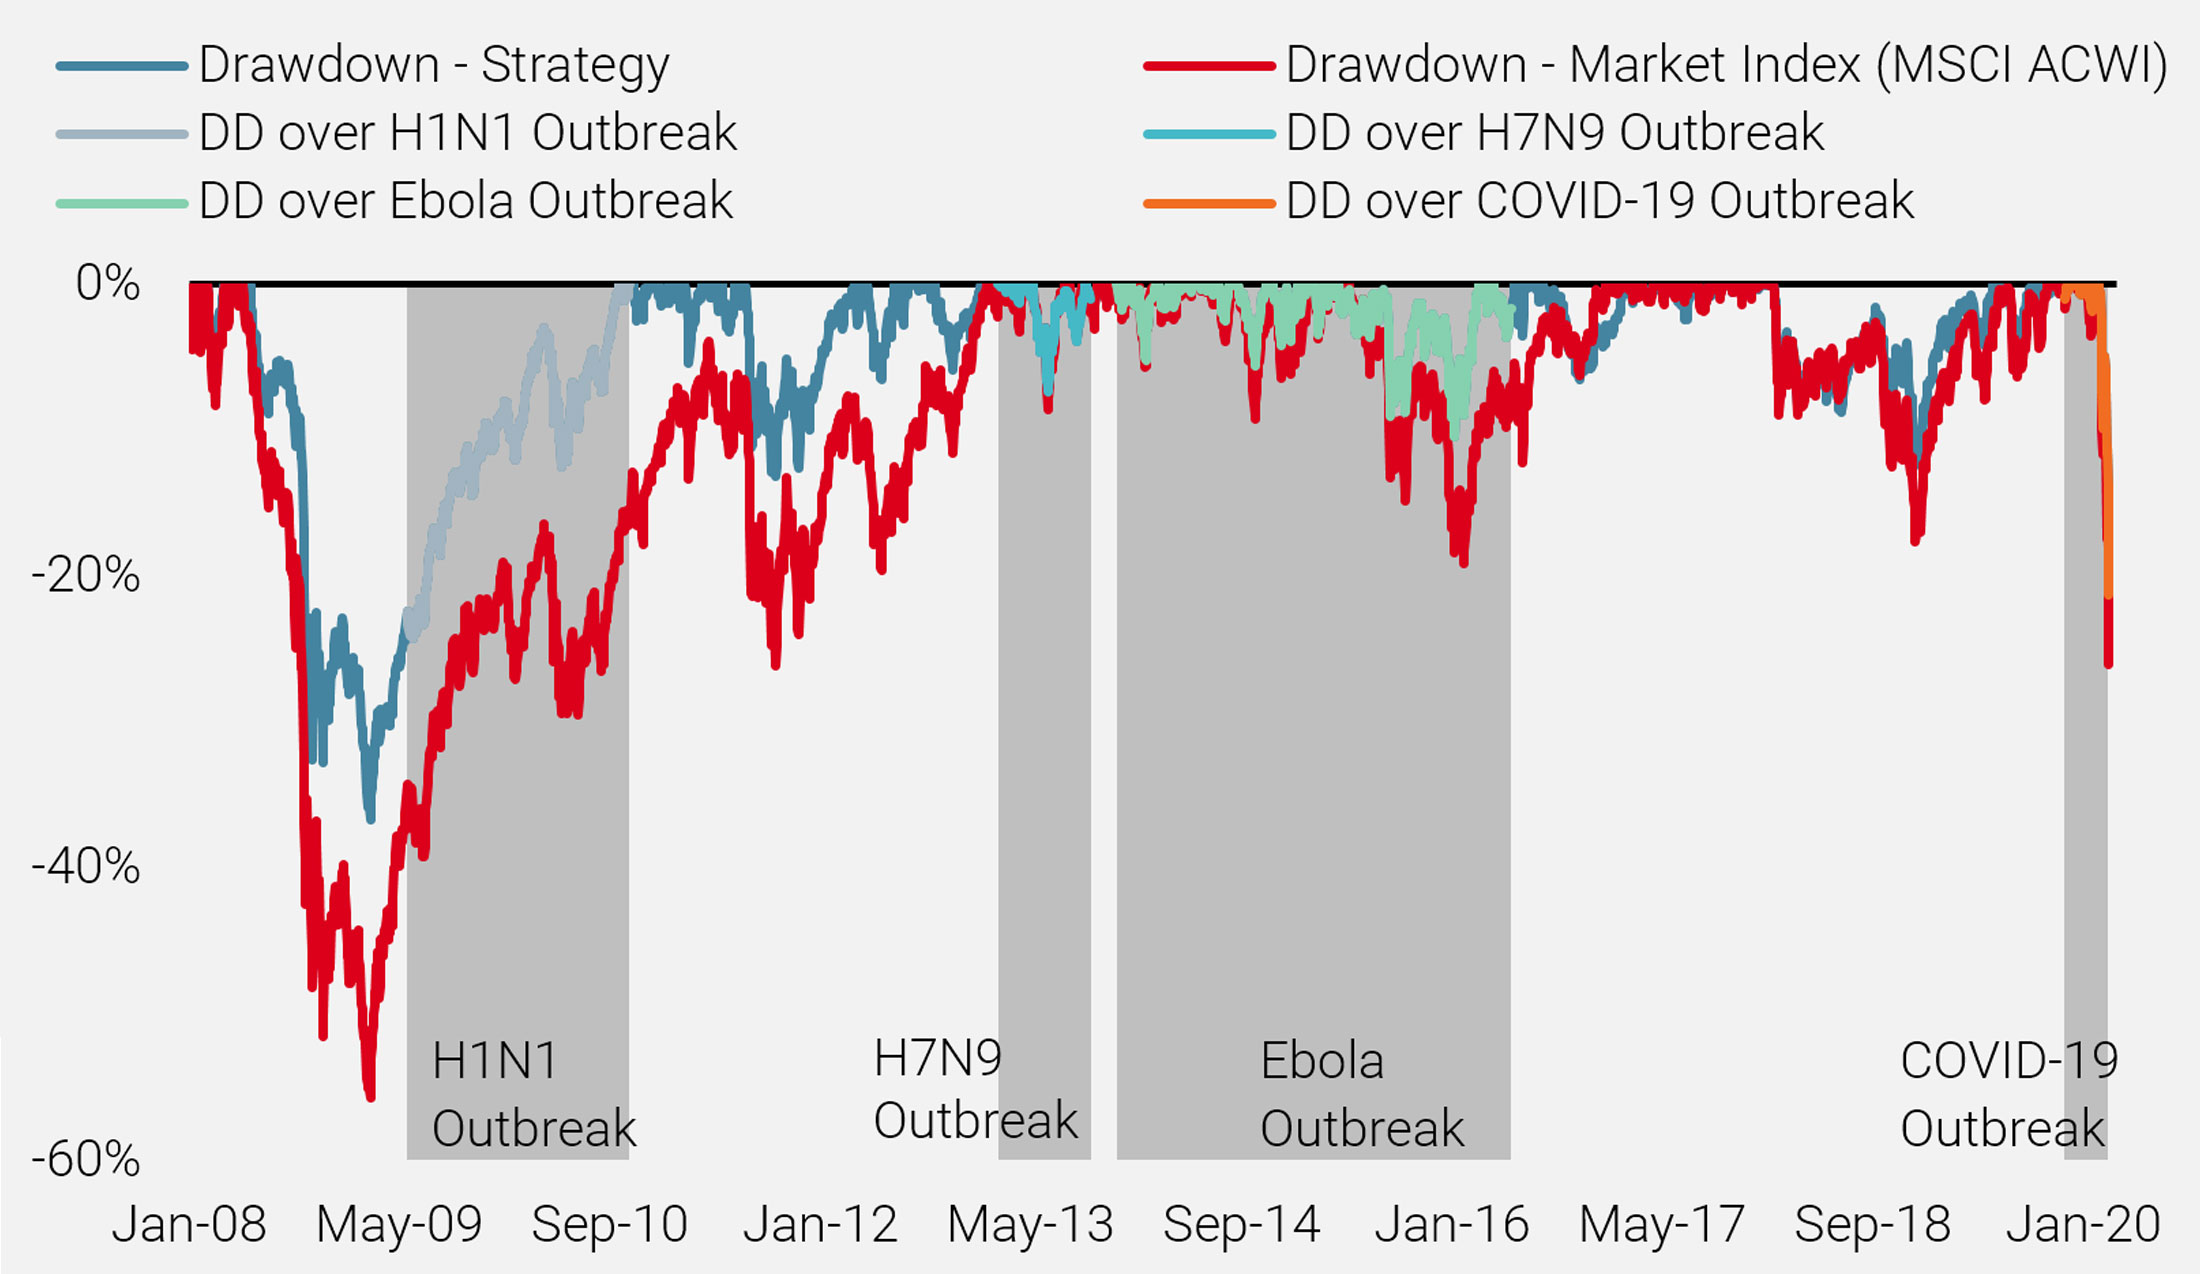 Figure 12: Historical Drawdowns During Outbreaks